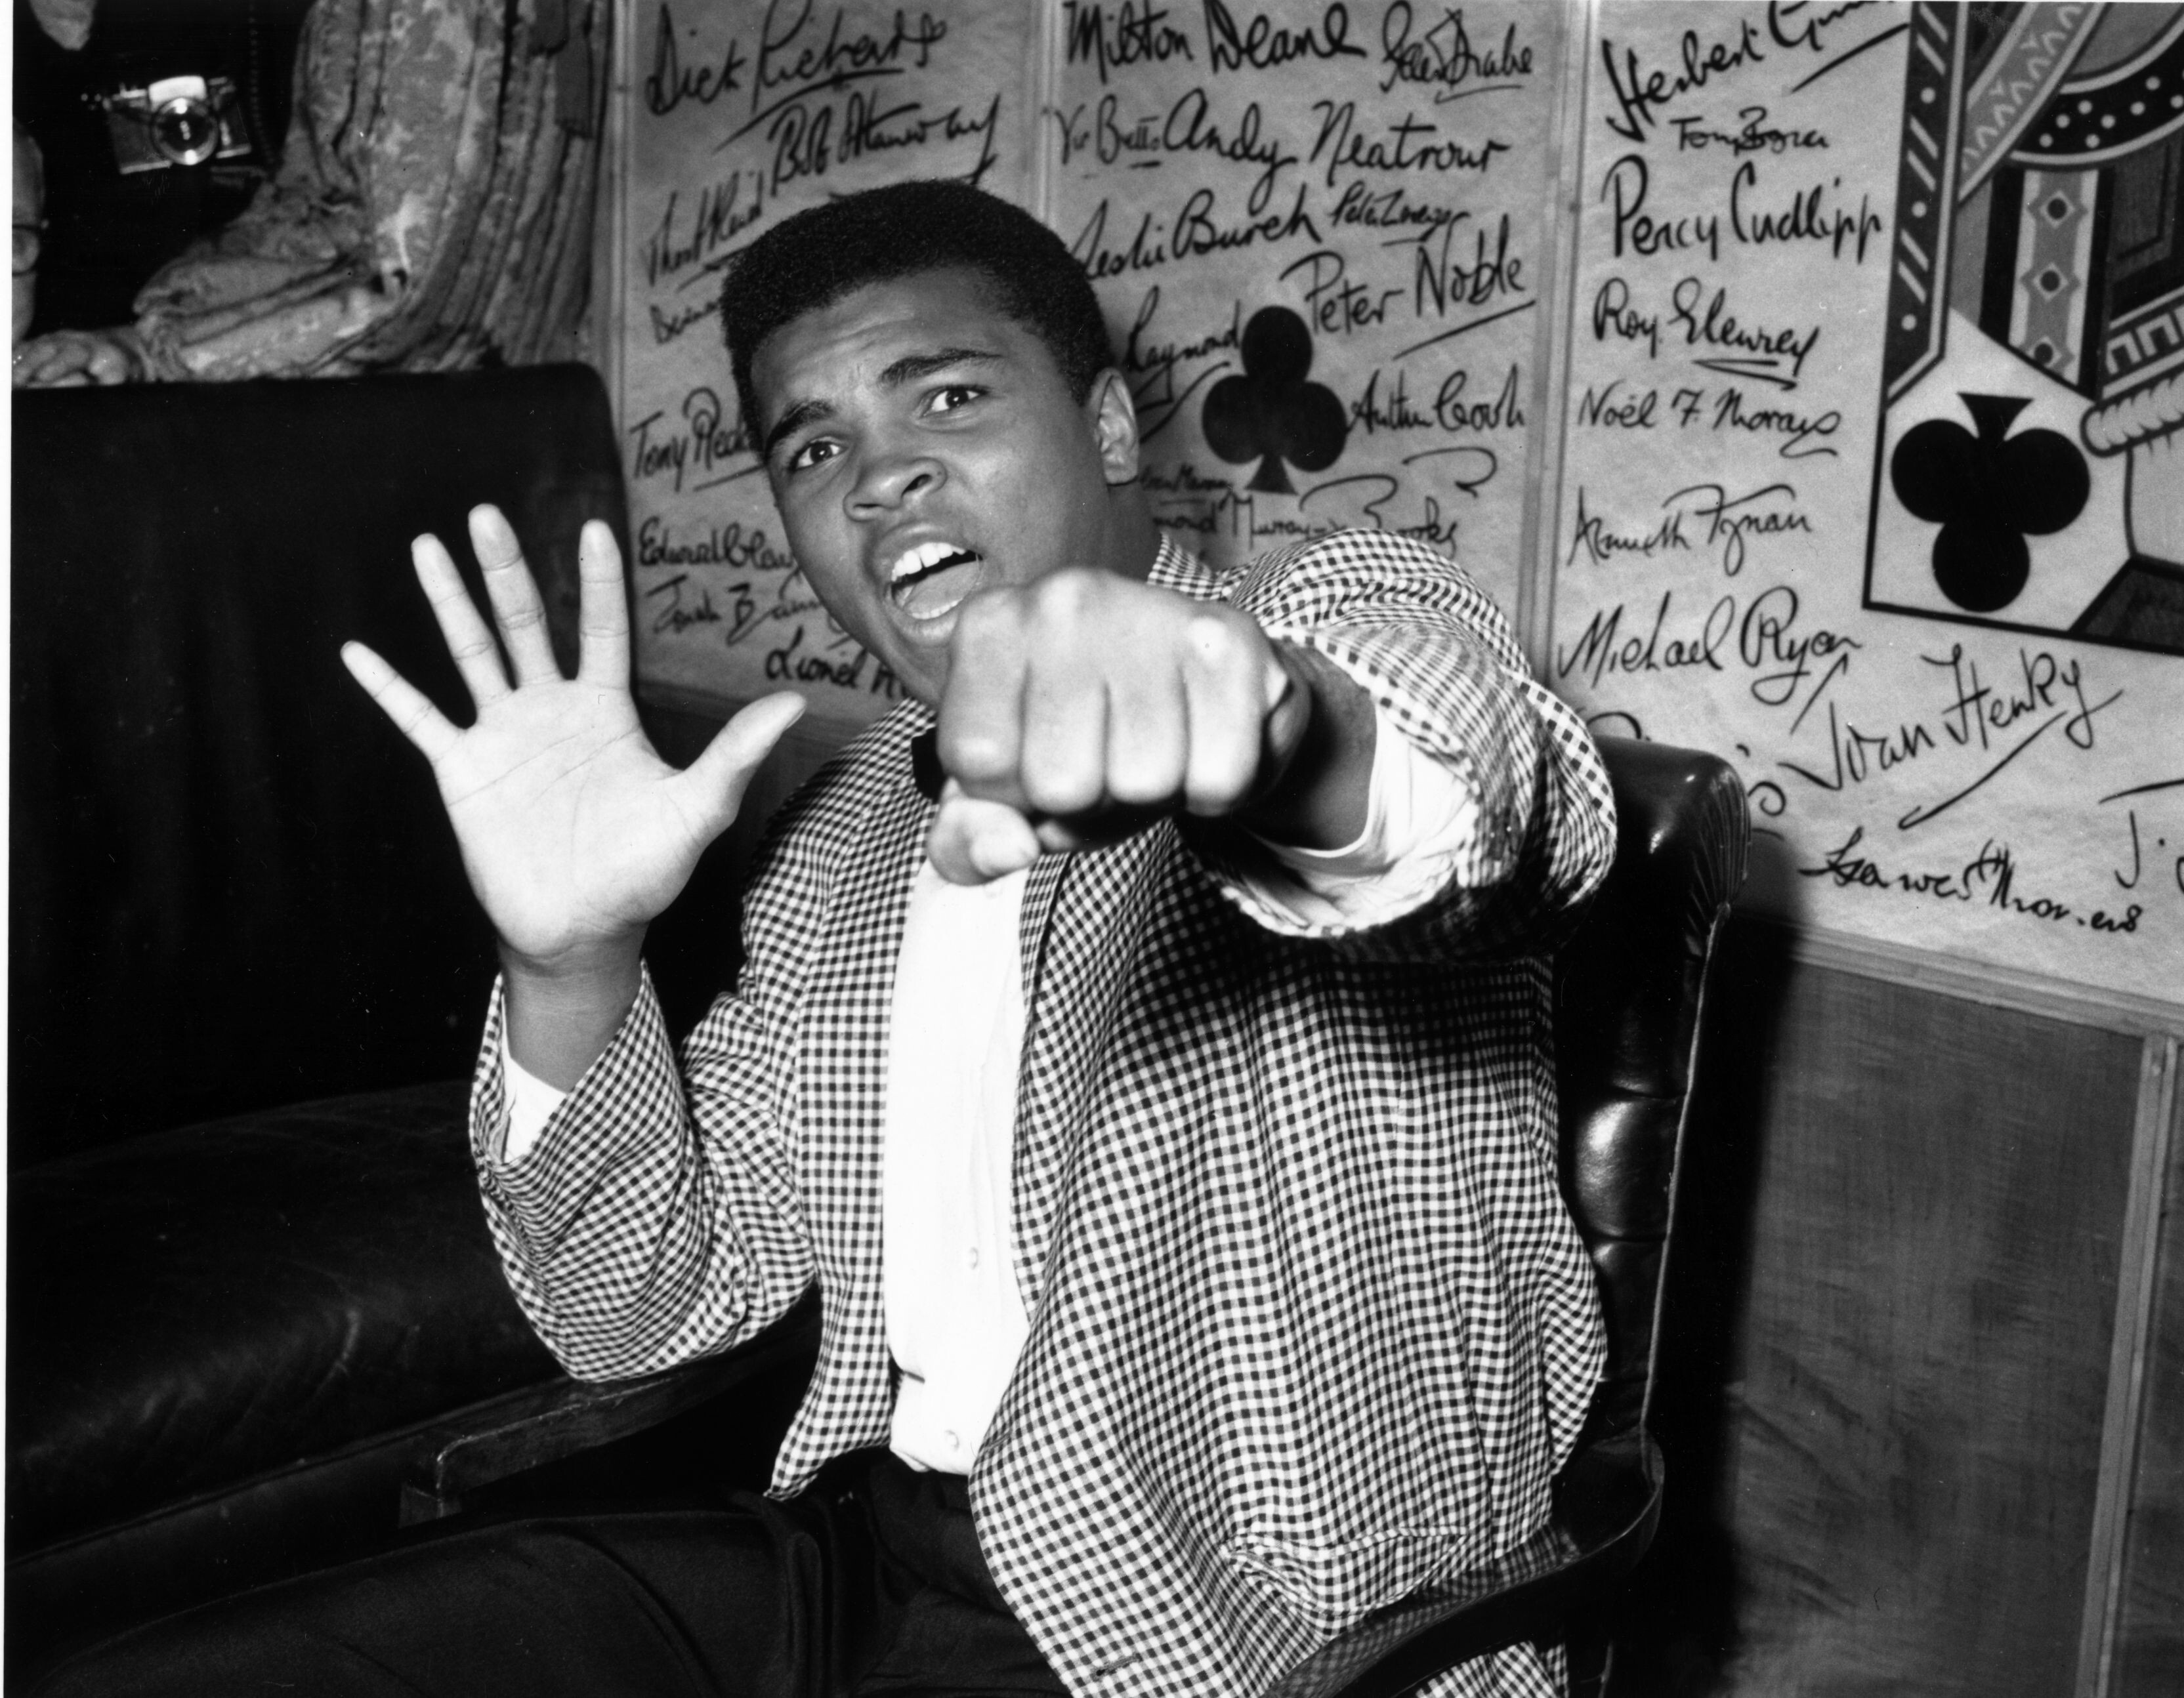 Muhammad Ali: Rare sketches by boxing great sell for nearly $1 million at auction